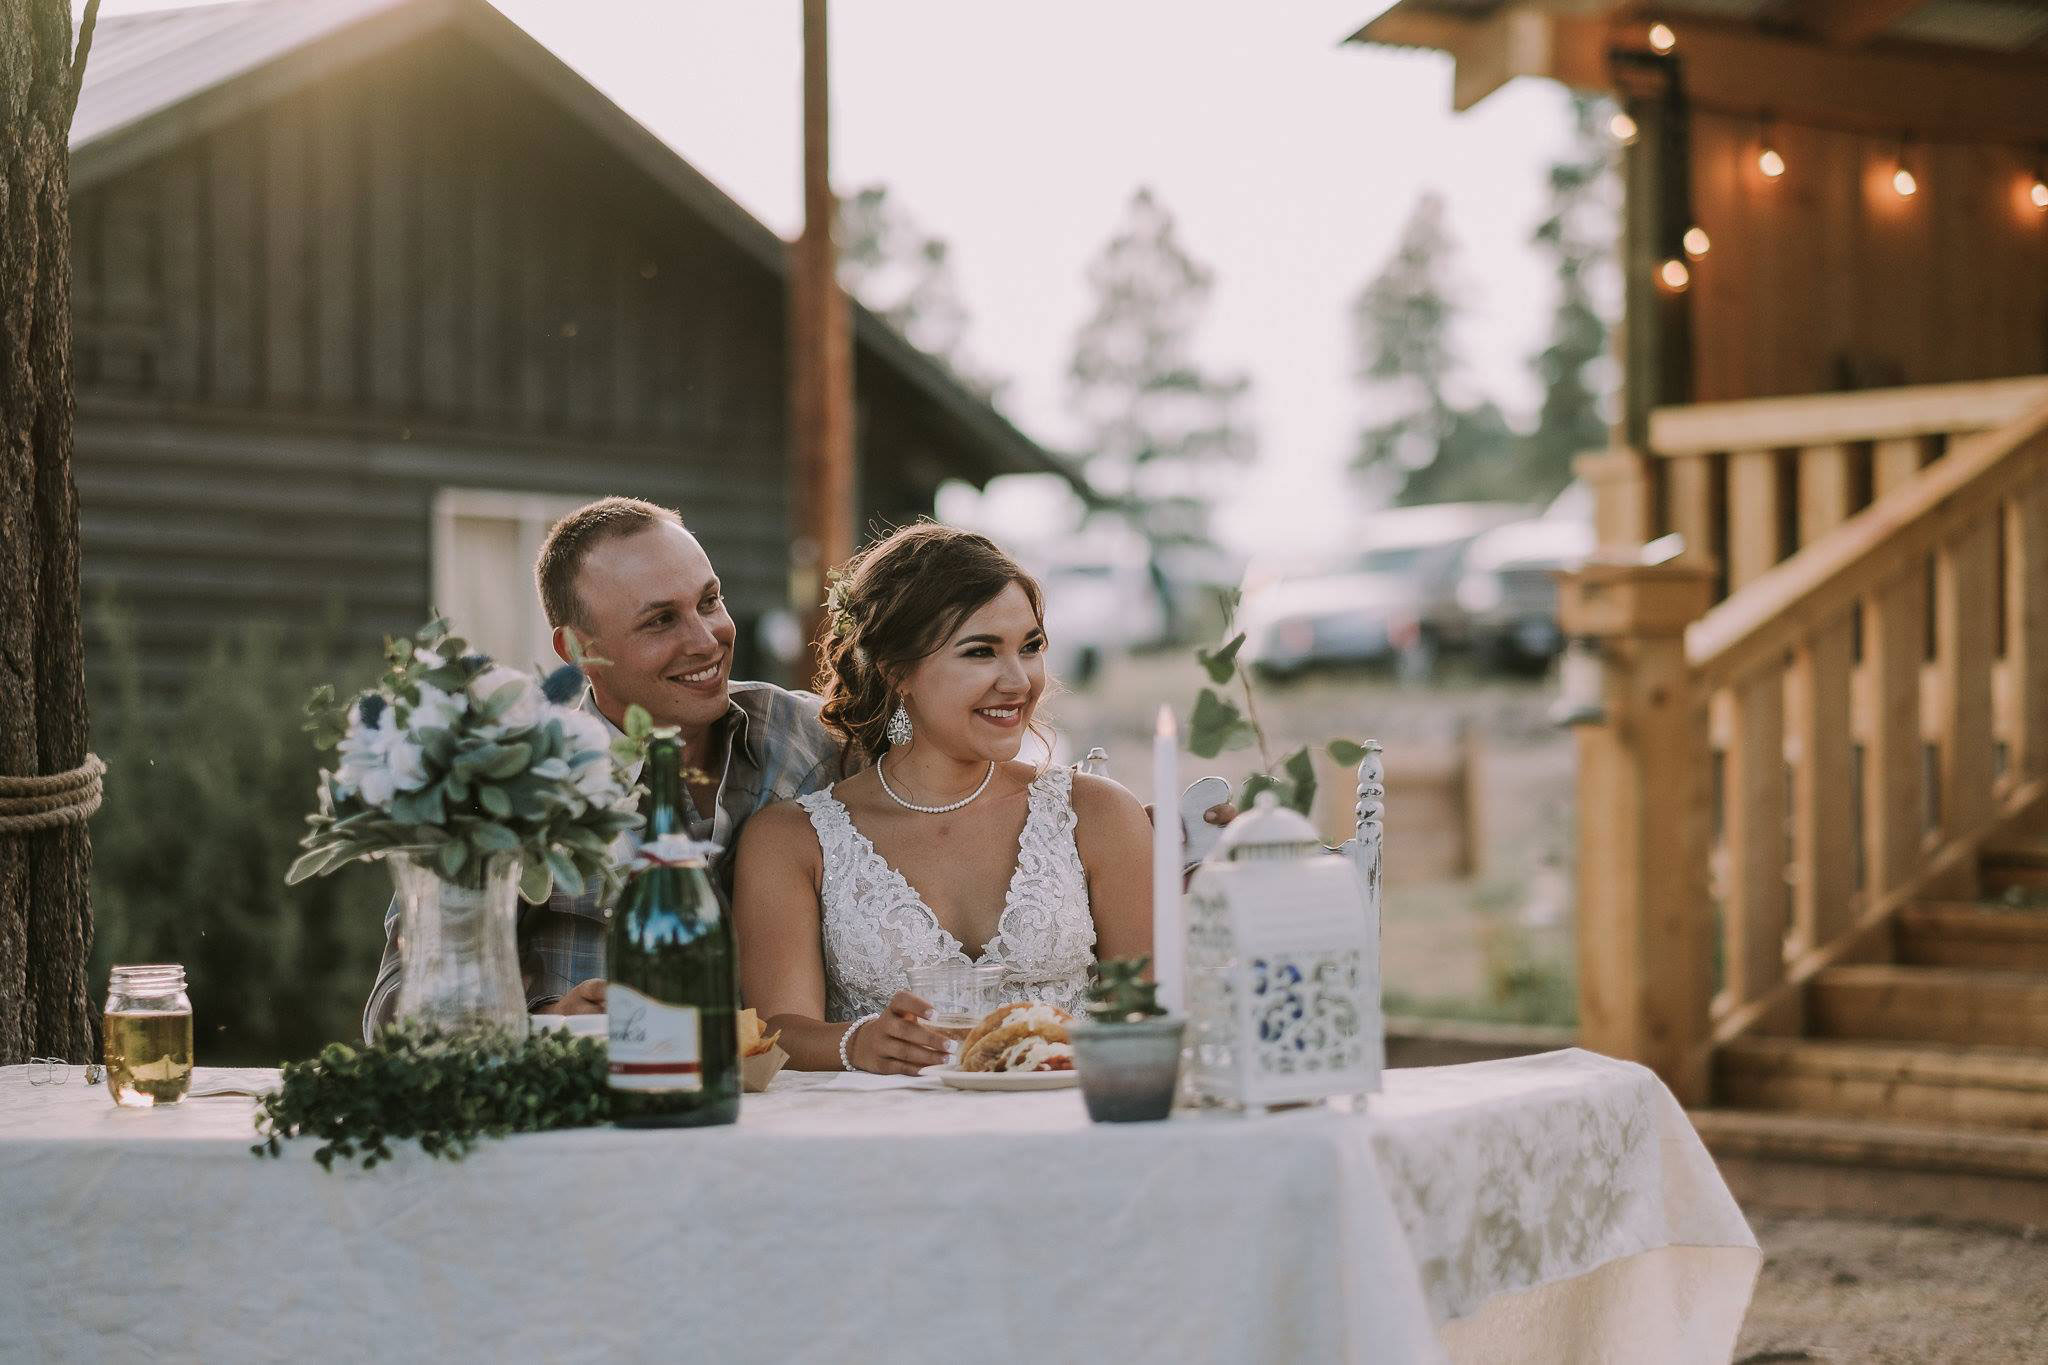 Outdoor wedding reception at Paradise Ranch in Pagosa Springs, Colorado